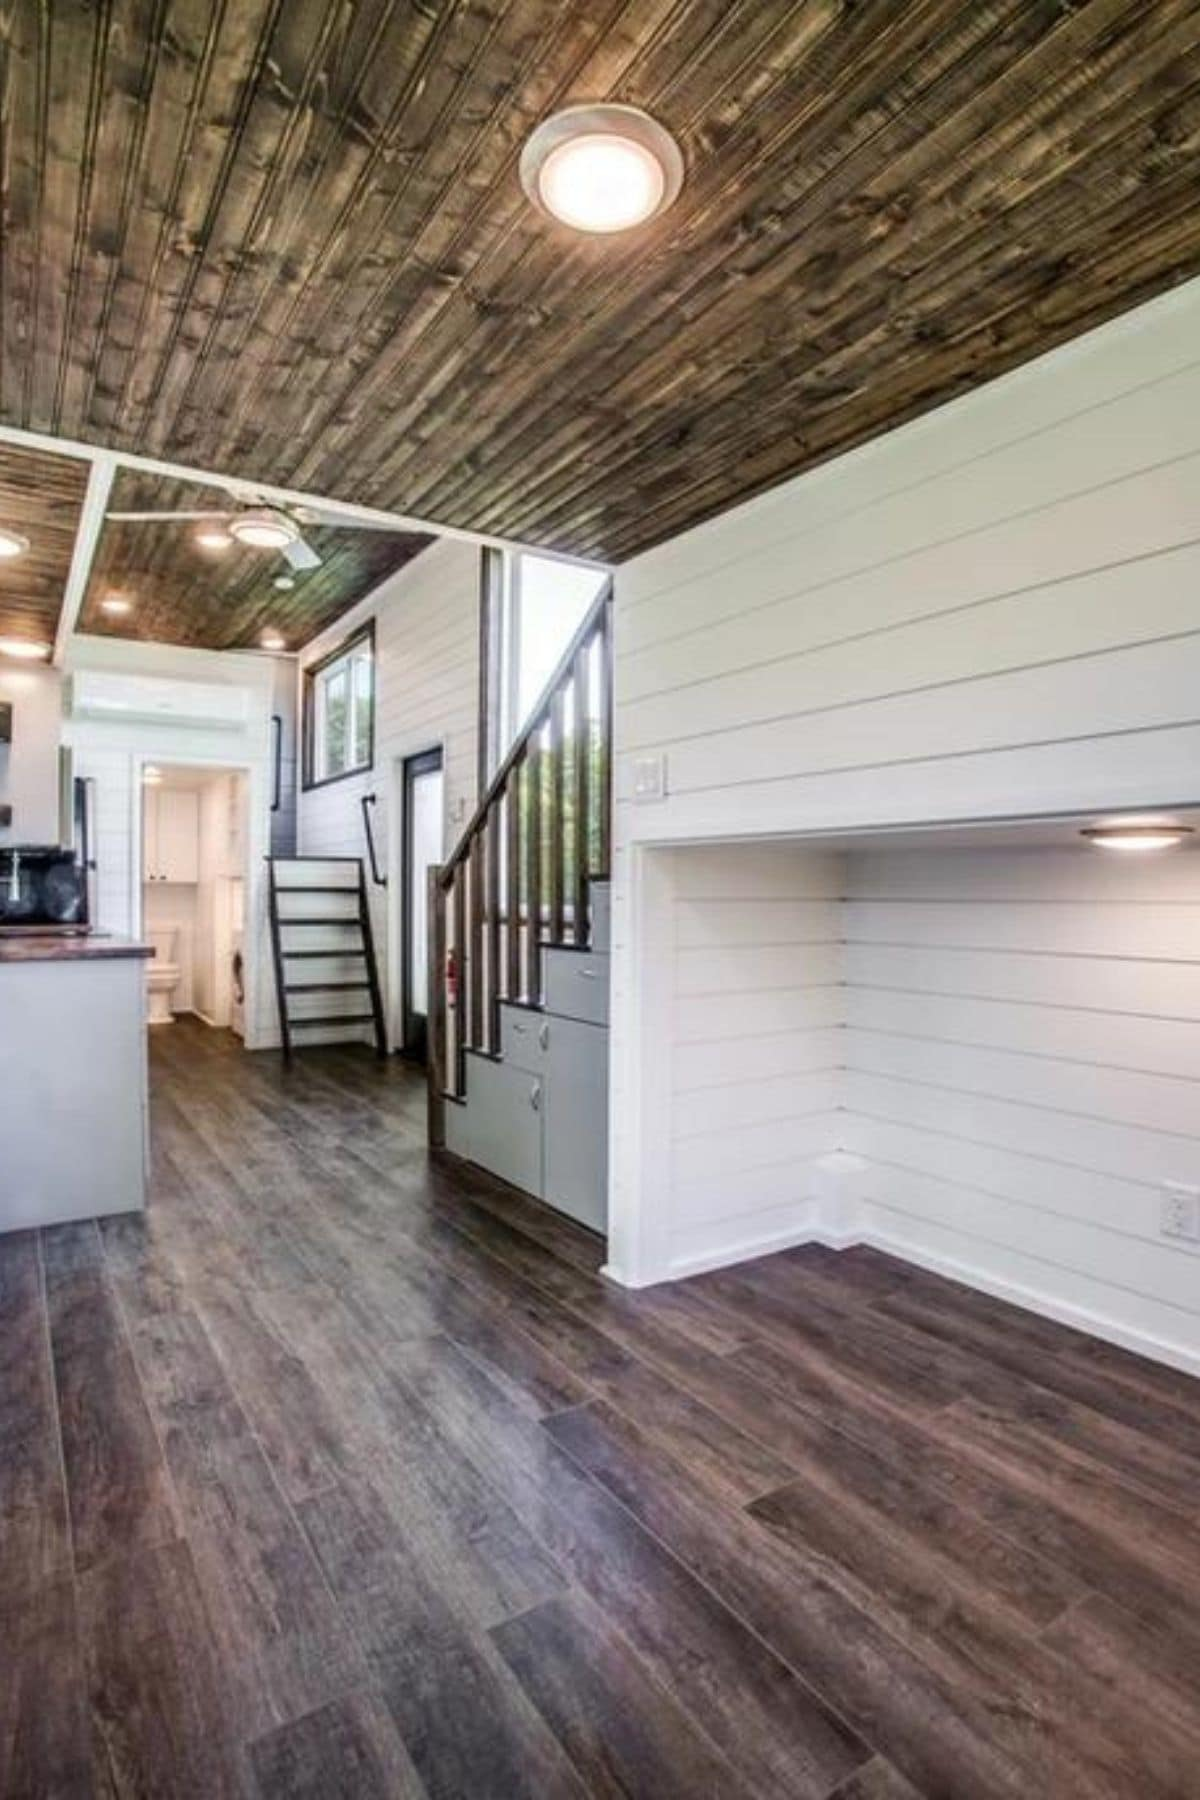 Open living space behind stairs with shelf against white shiplap wall